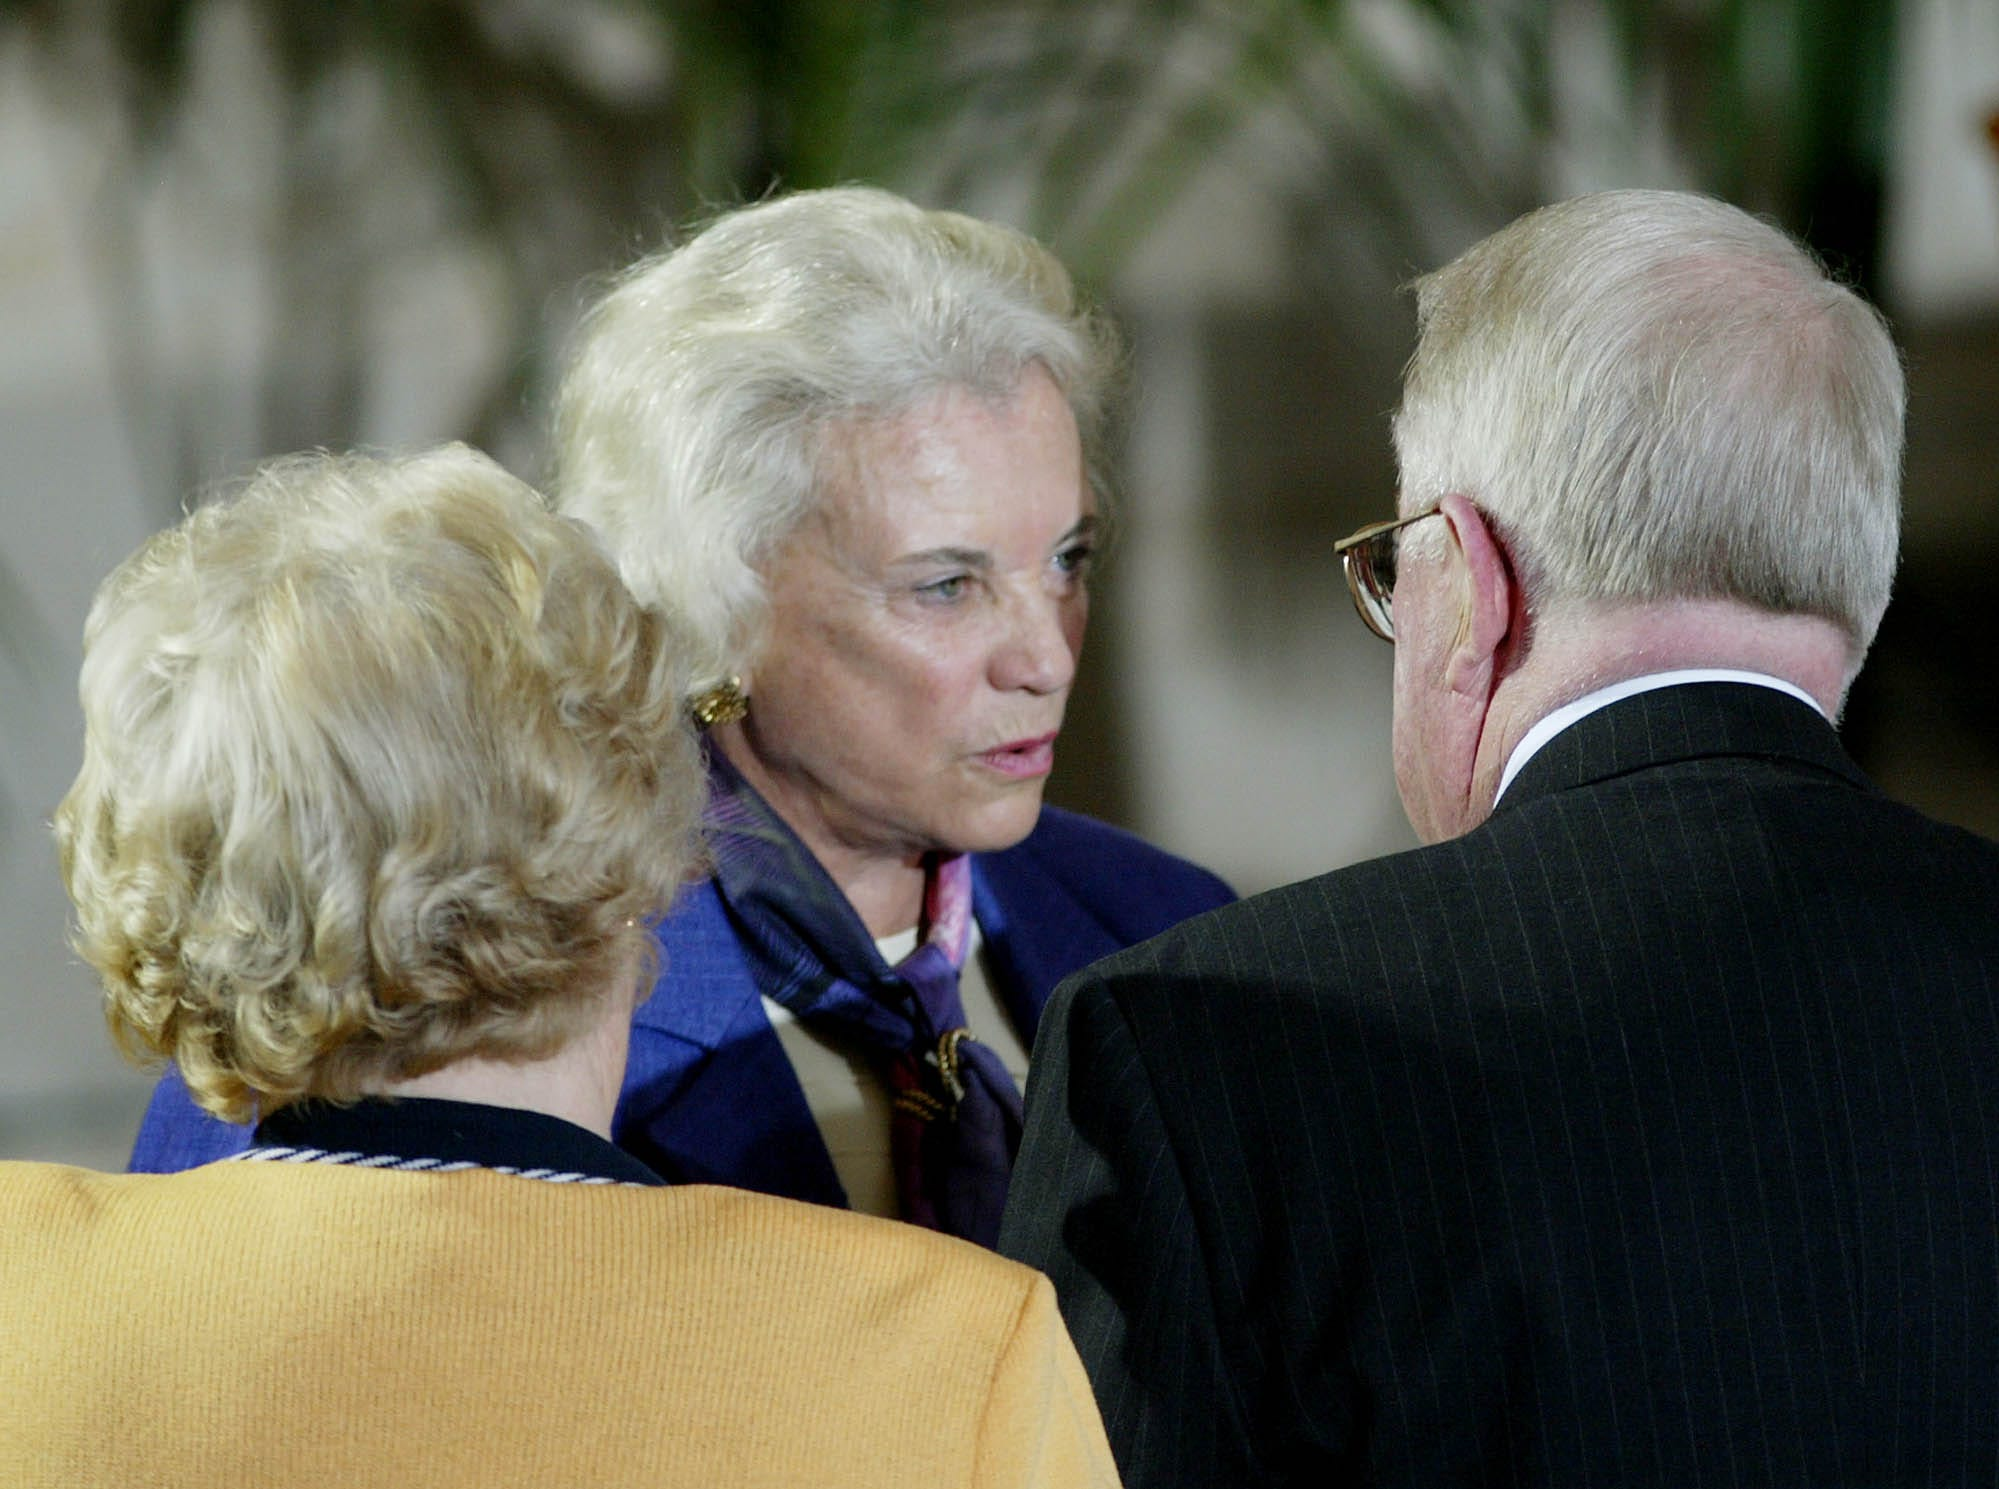 Supreme Court Justice Sandra Day O'Connor talks to Edwin Meese, attorney general in the Reagan administration,  and Meese's wife Ursula in the Rotunda on Capitol Hill on May 16, 2002, during a ceremony where the former president and Mrs. Reagan received Congressional Gold Medals.